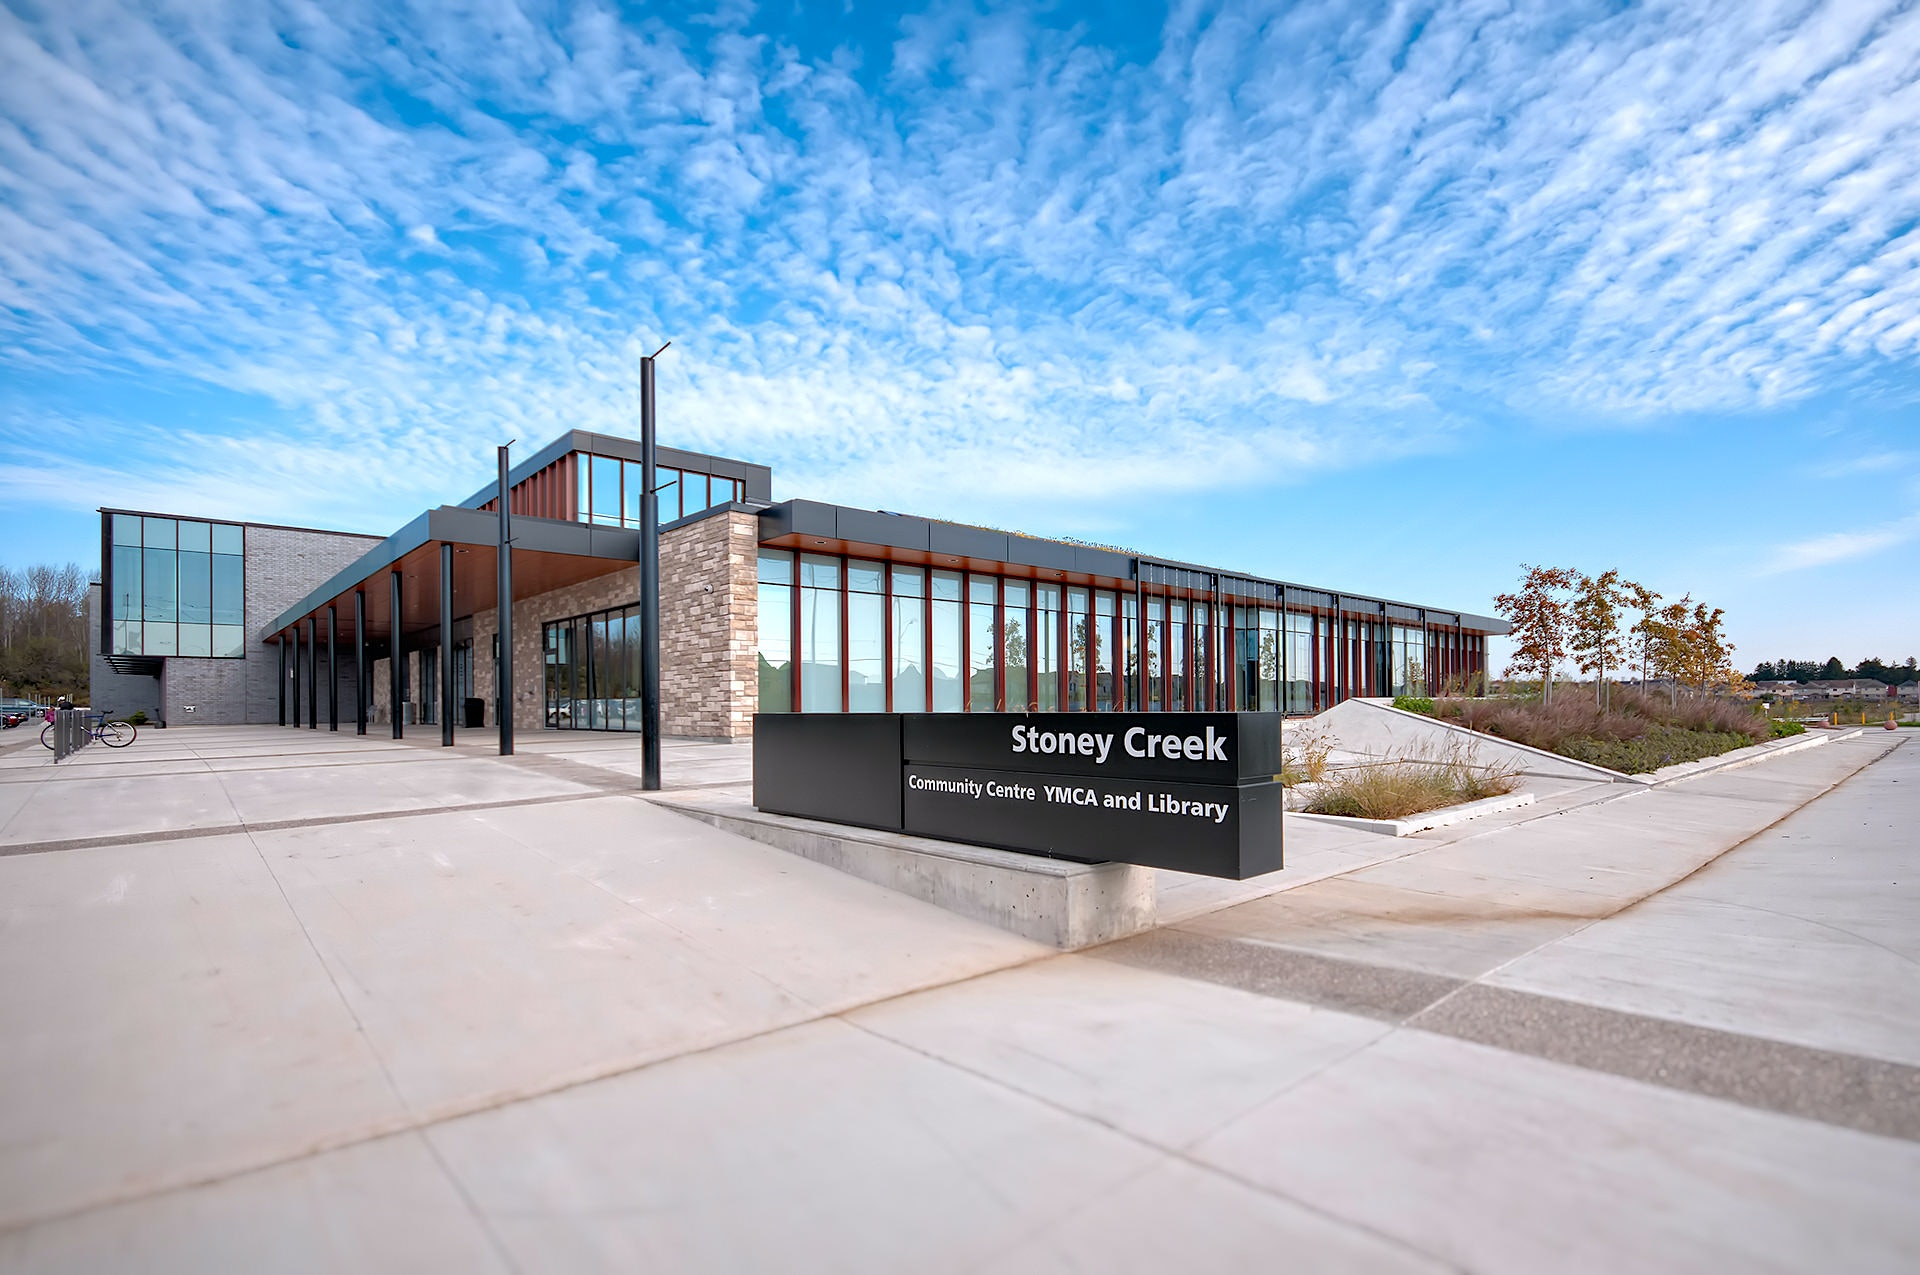 Exterior architecture photo of Stoney Creek Community Centre in London Ontario